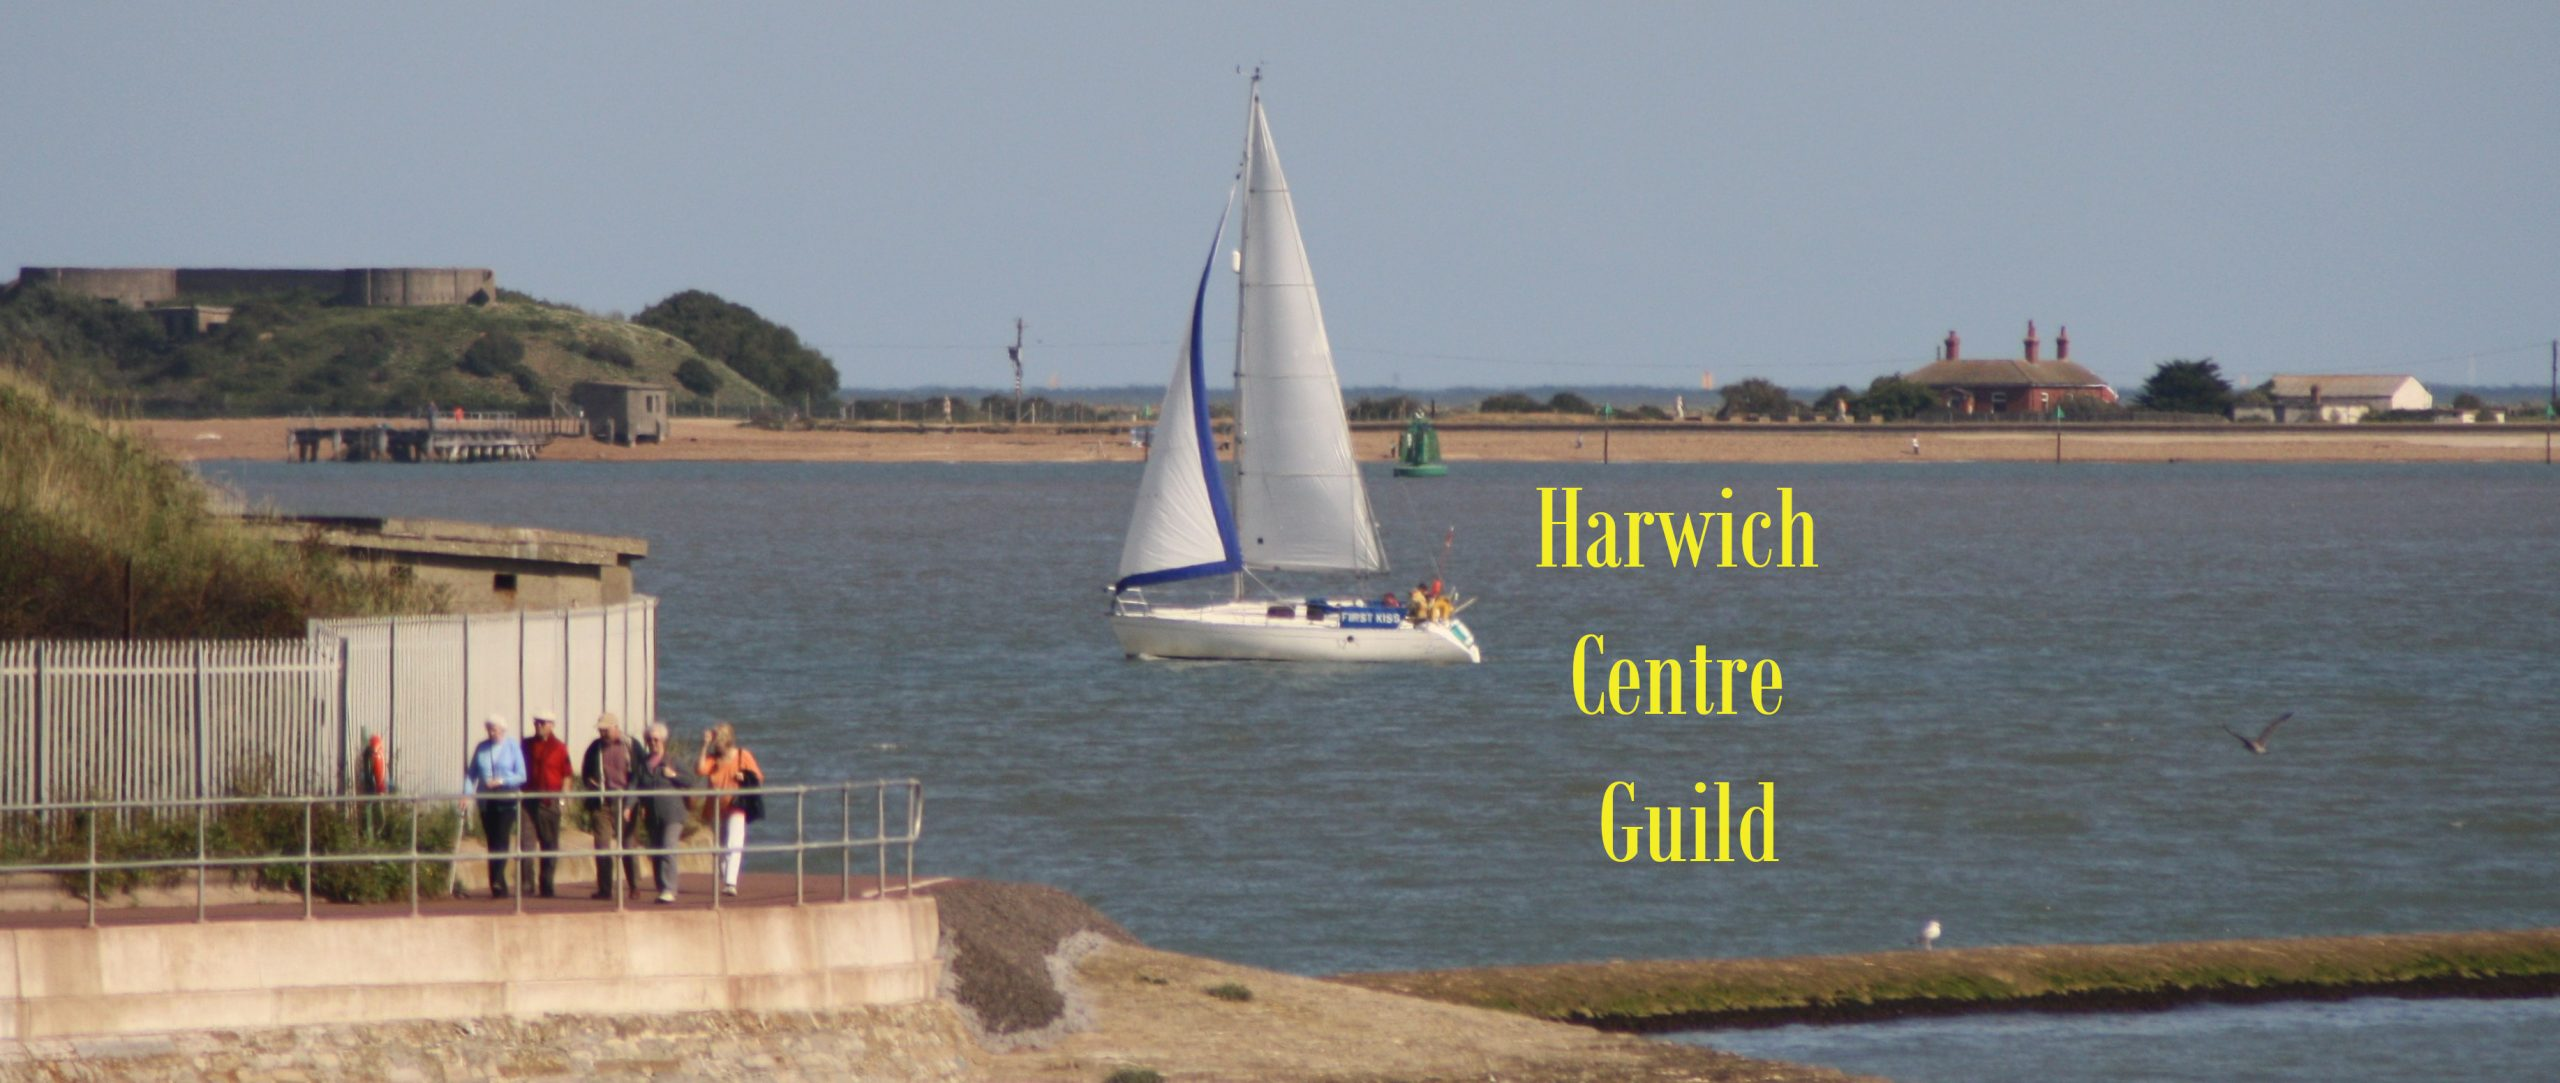 The Harwich Centre Guild